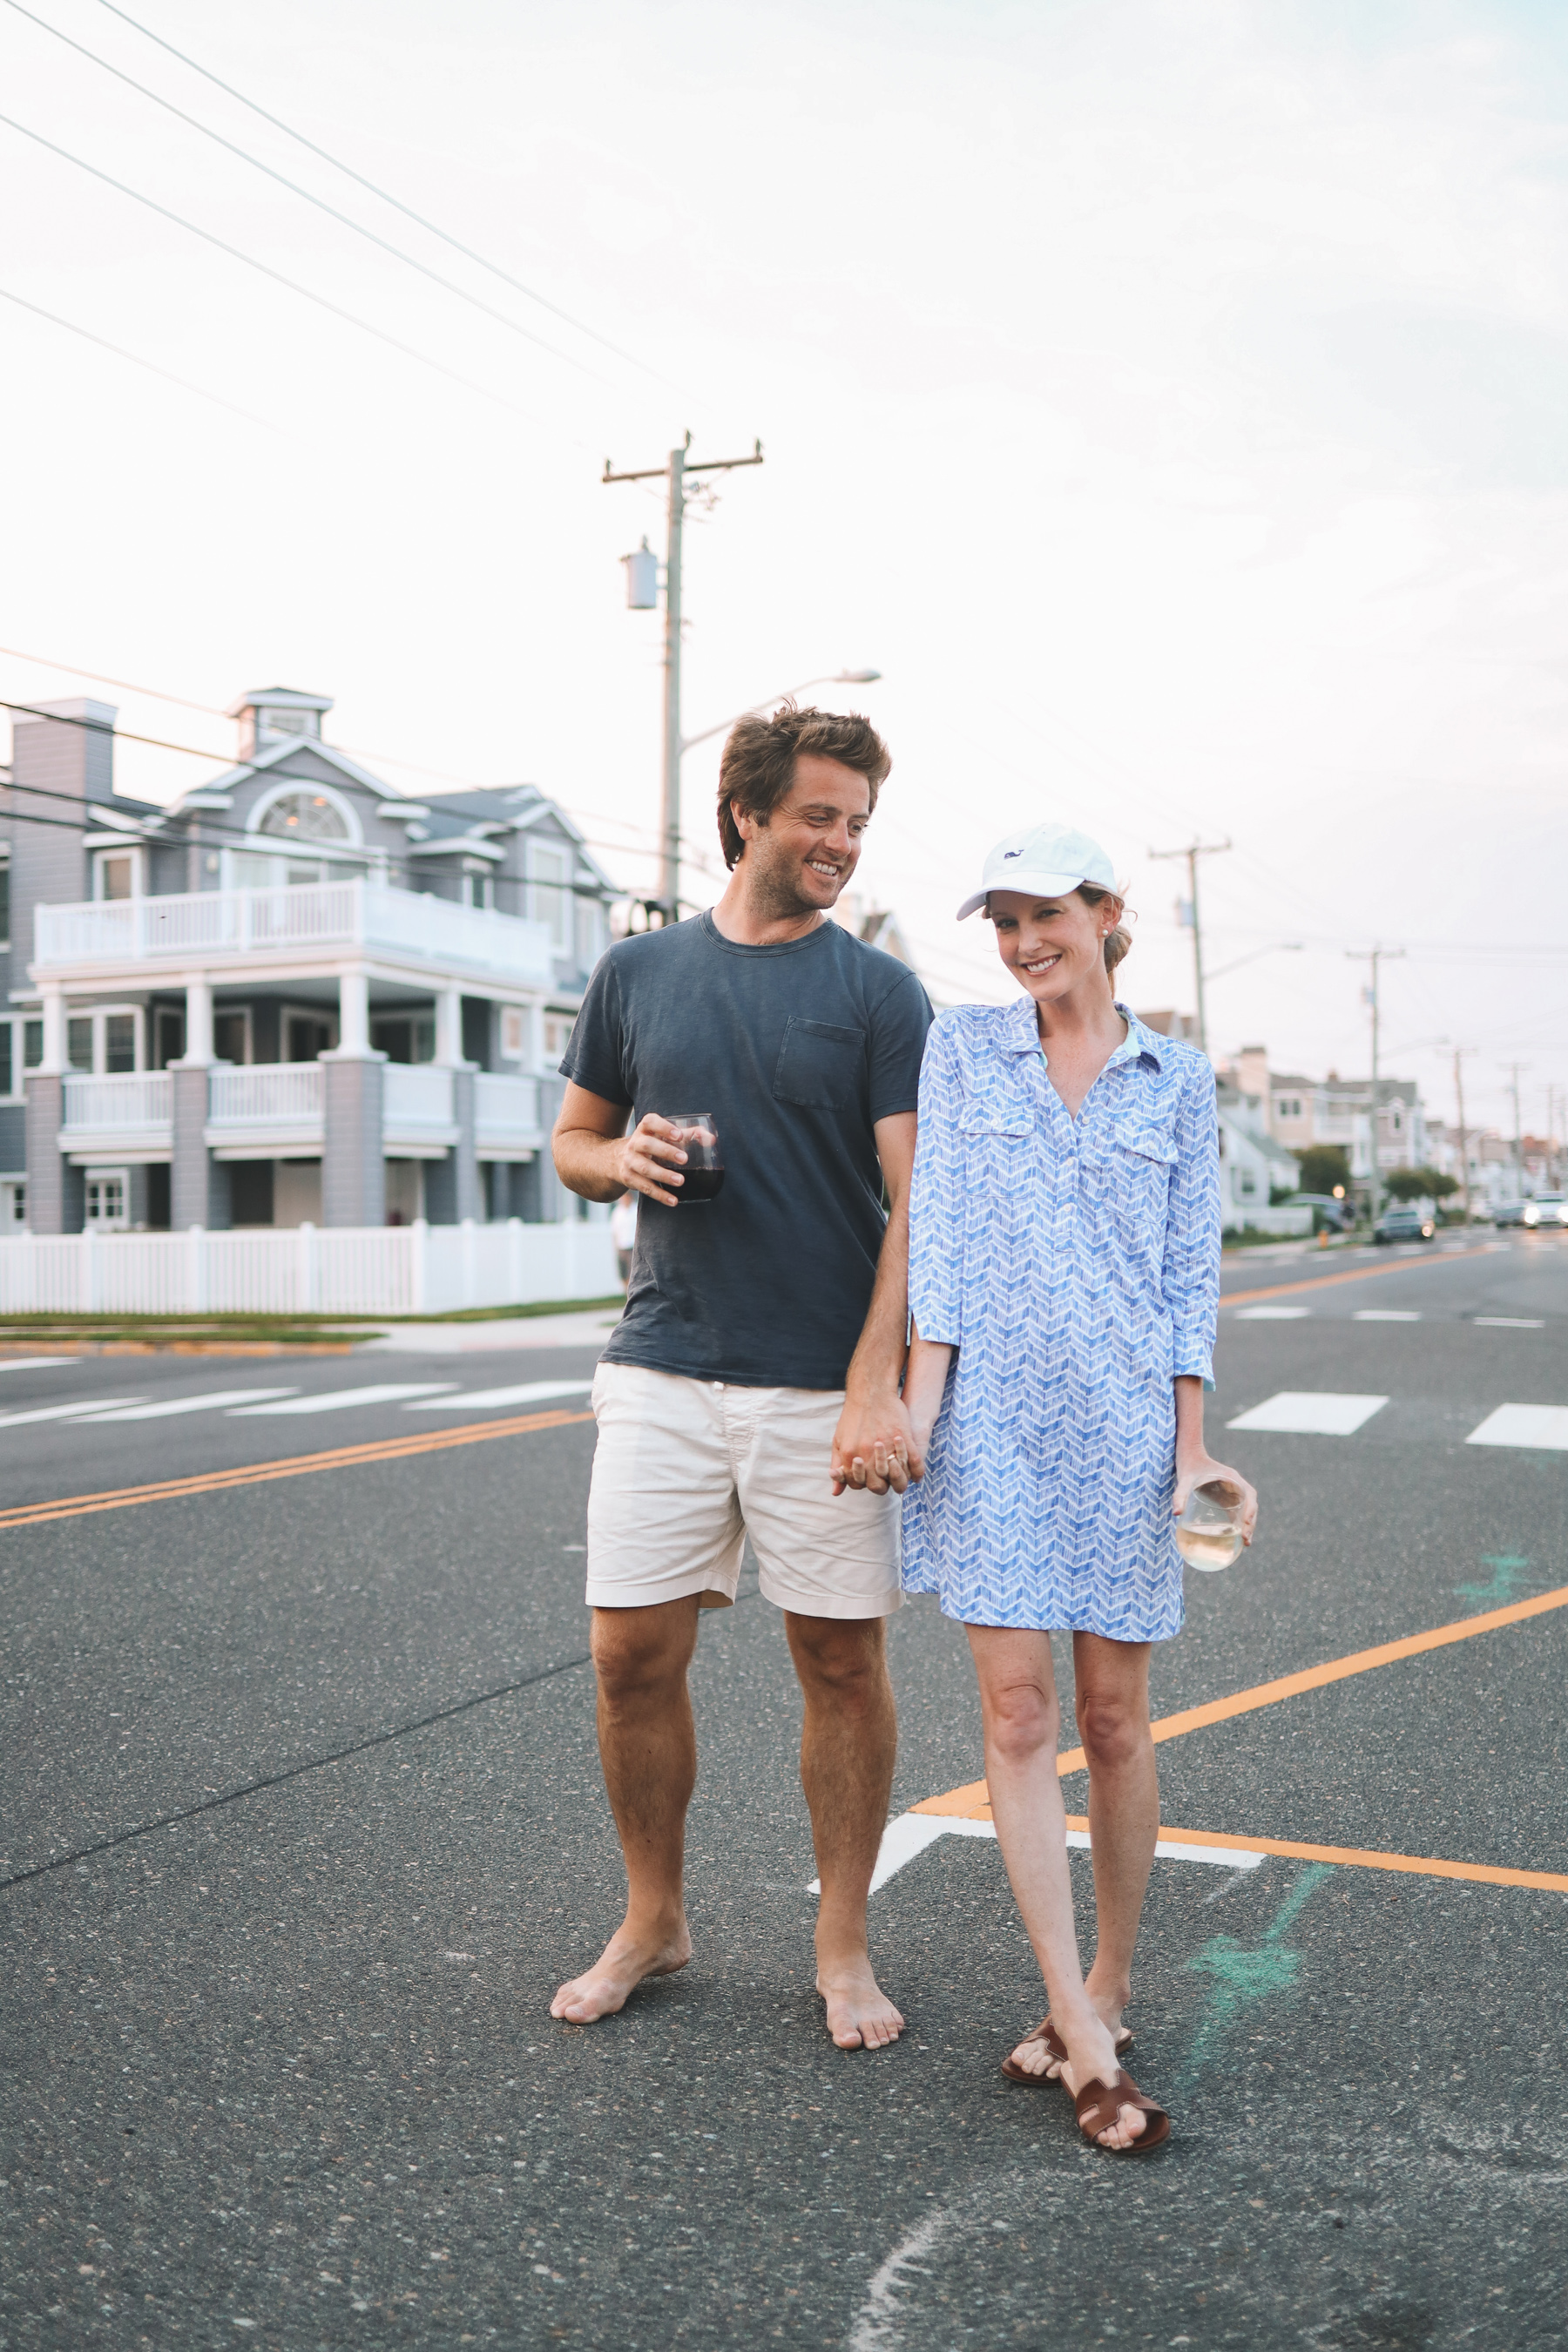 Vineyard Vines Dress and Hat   10 Things with Mitch 8/3